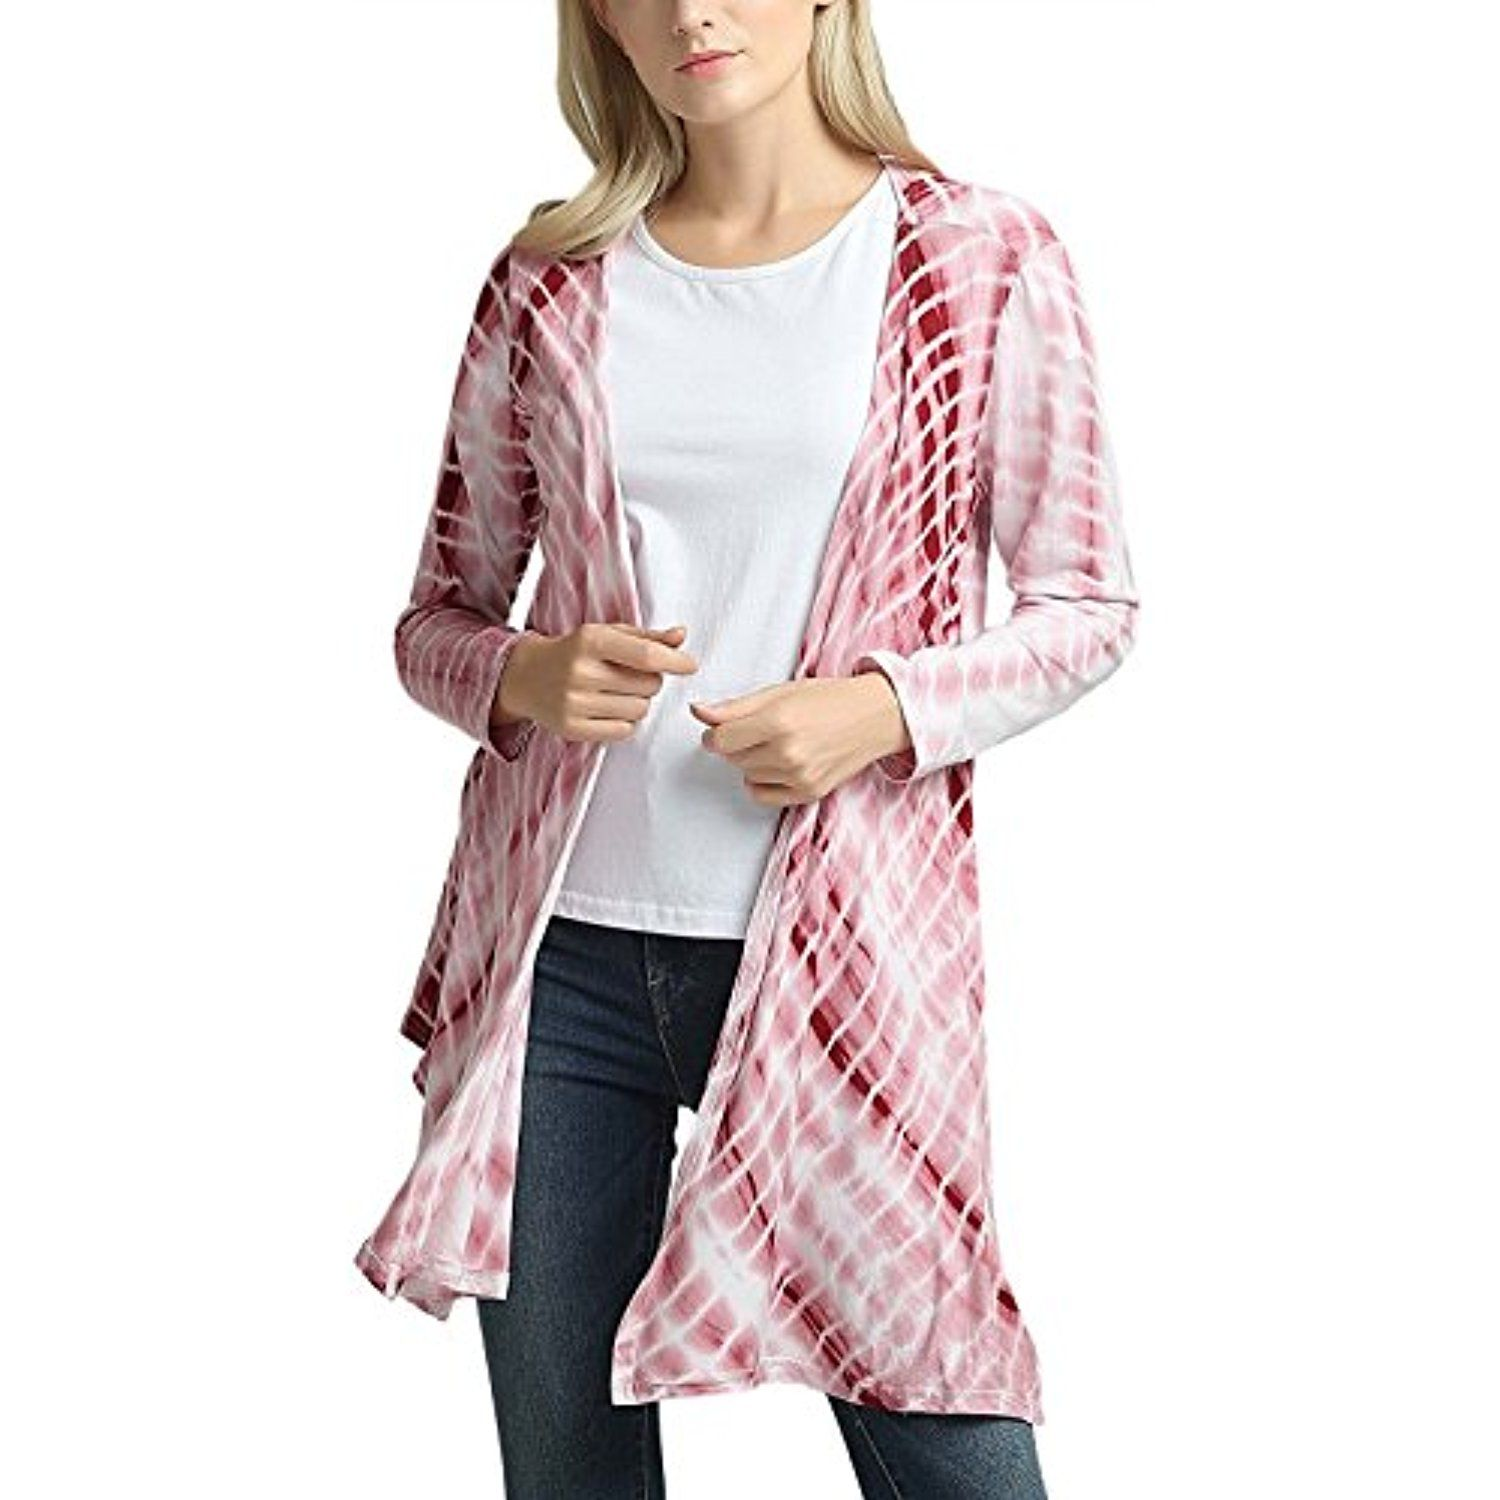 girls cardigan chaserbrand avalon com s knit open drapes front love product draped products type l